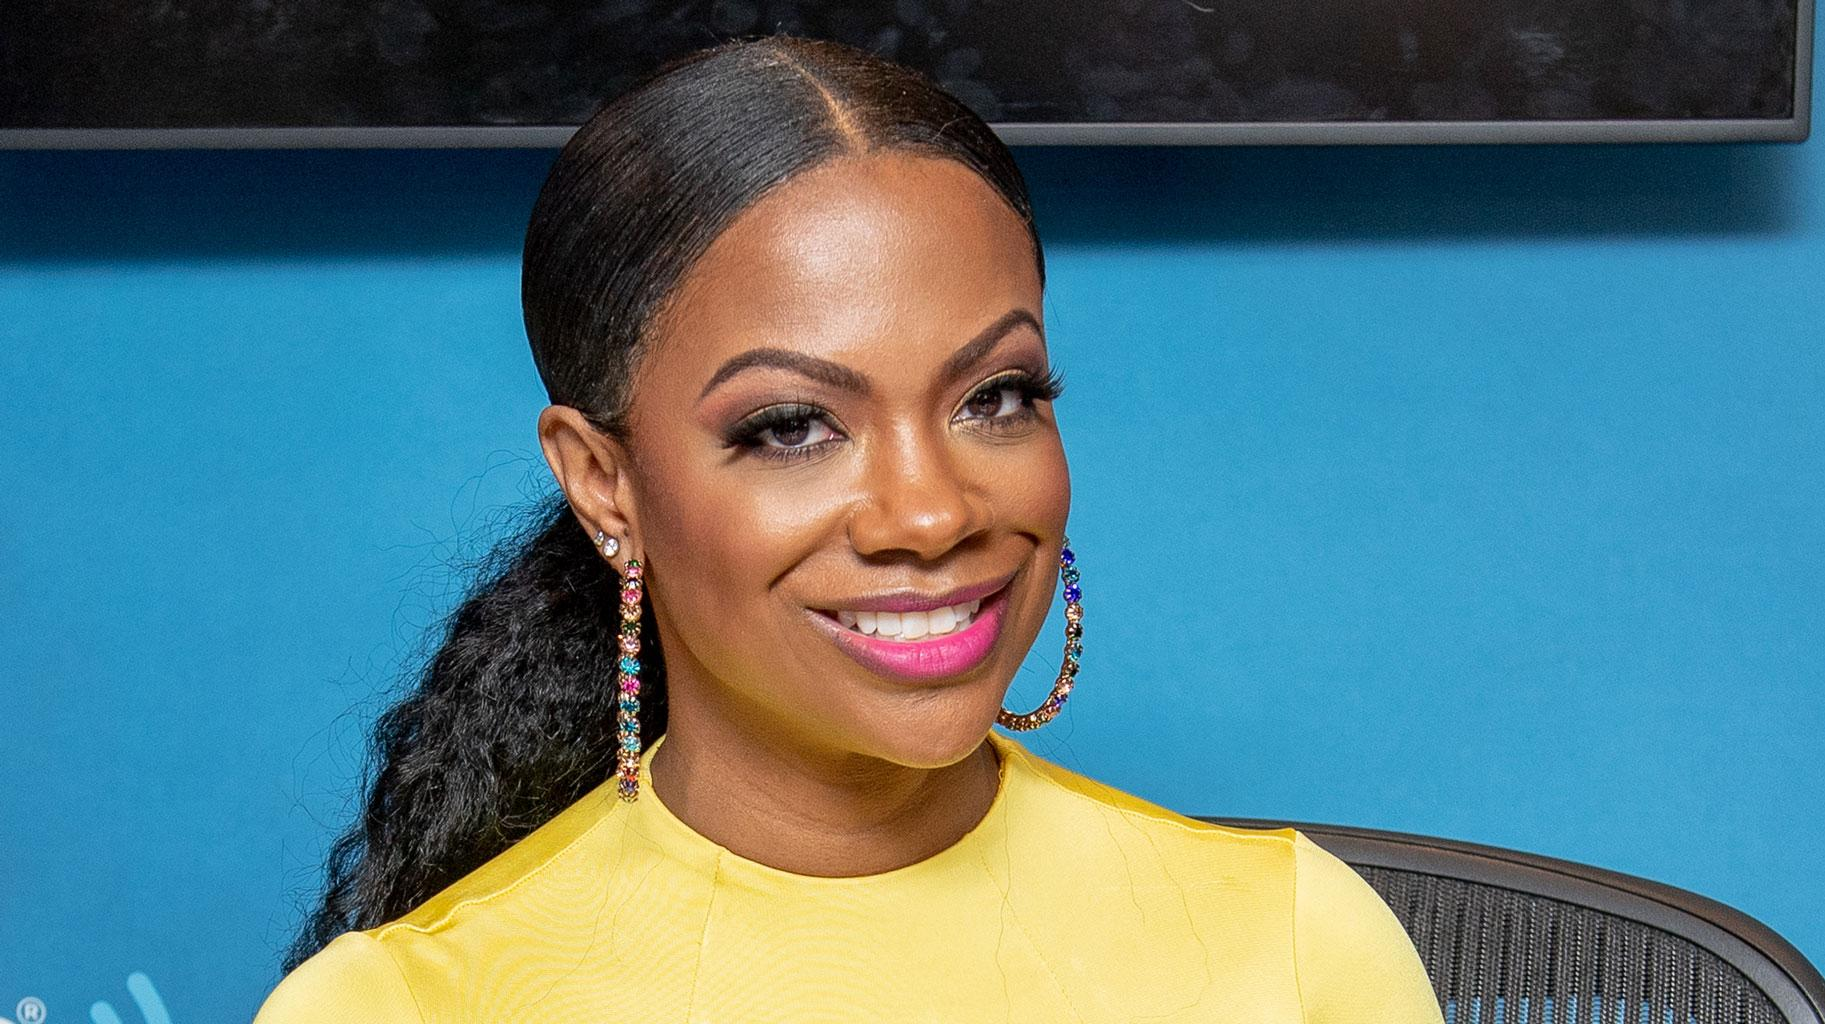 Kandi Burruss Shares A Gorgeous Family Photo From Her NYE Vacay - See It Here